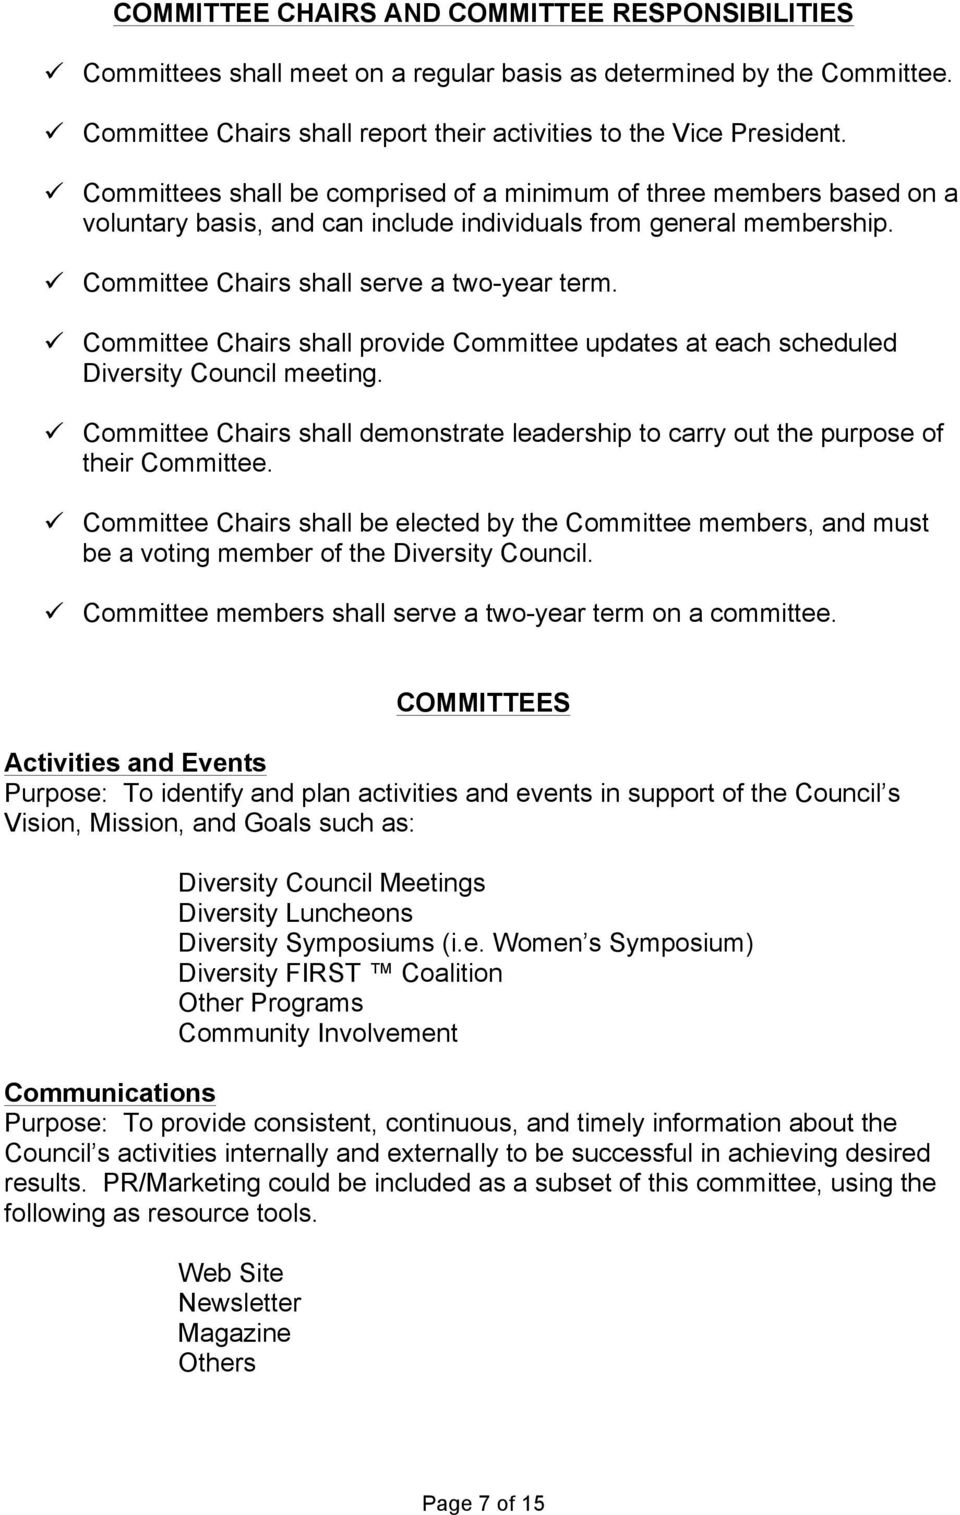 Committee Chairs shall provide Committee updates at each scheduled Diversity Council meeting. Committee Chairs shall demonstrate leadership to carry out the purpose of their Committee.